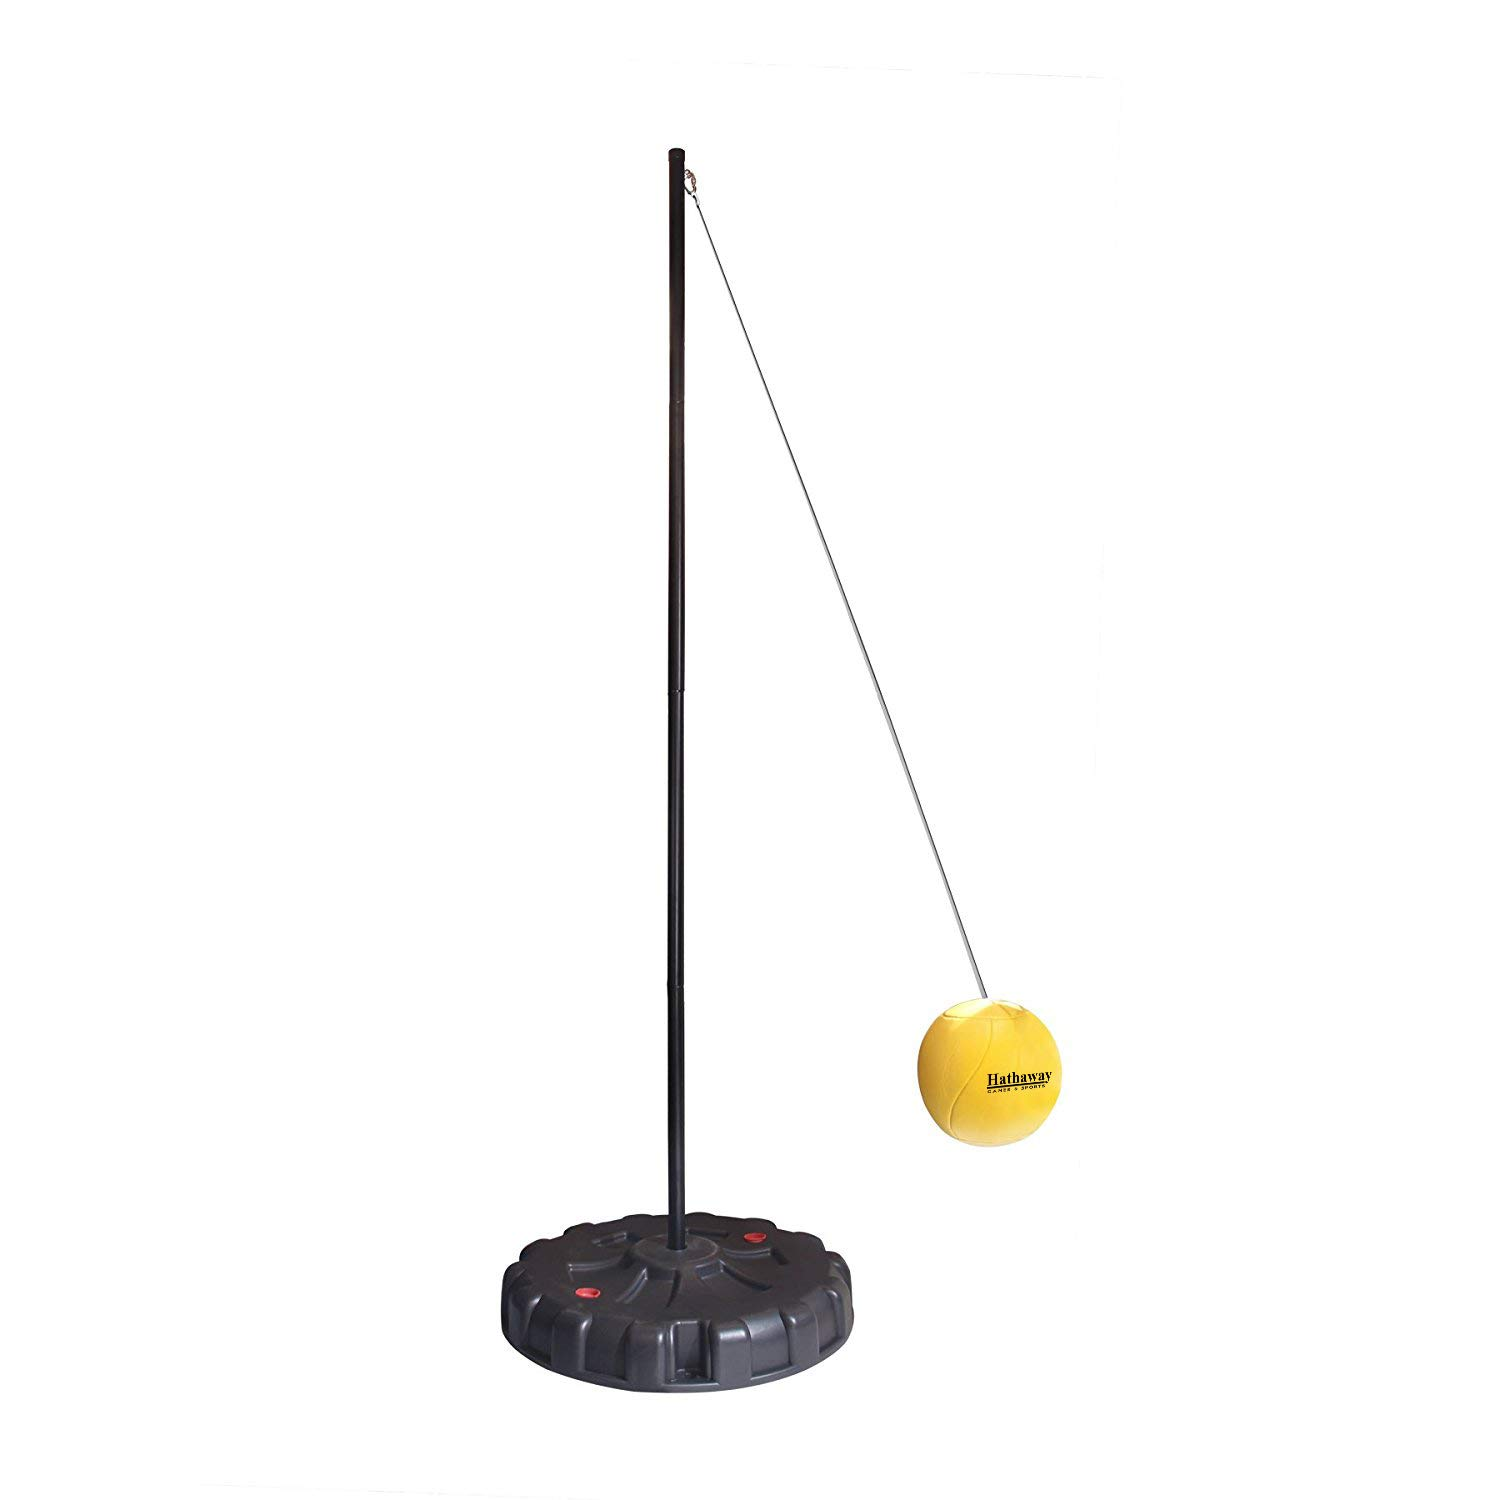 Hathaway Tetherball Set with Fillable Base & Durable Ball - Weather-Resistant Backyard Game for Kids & Adults - Black/Yellow by Hathaway